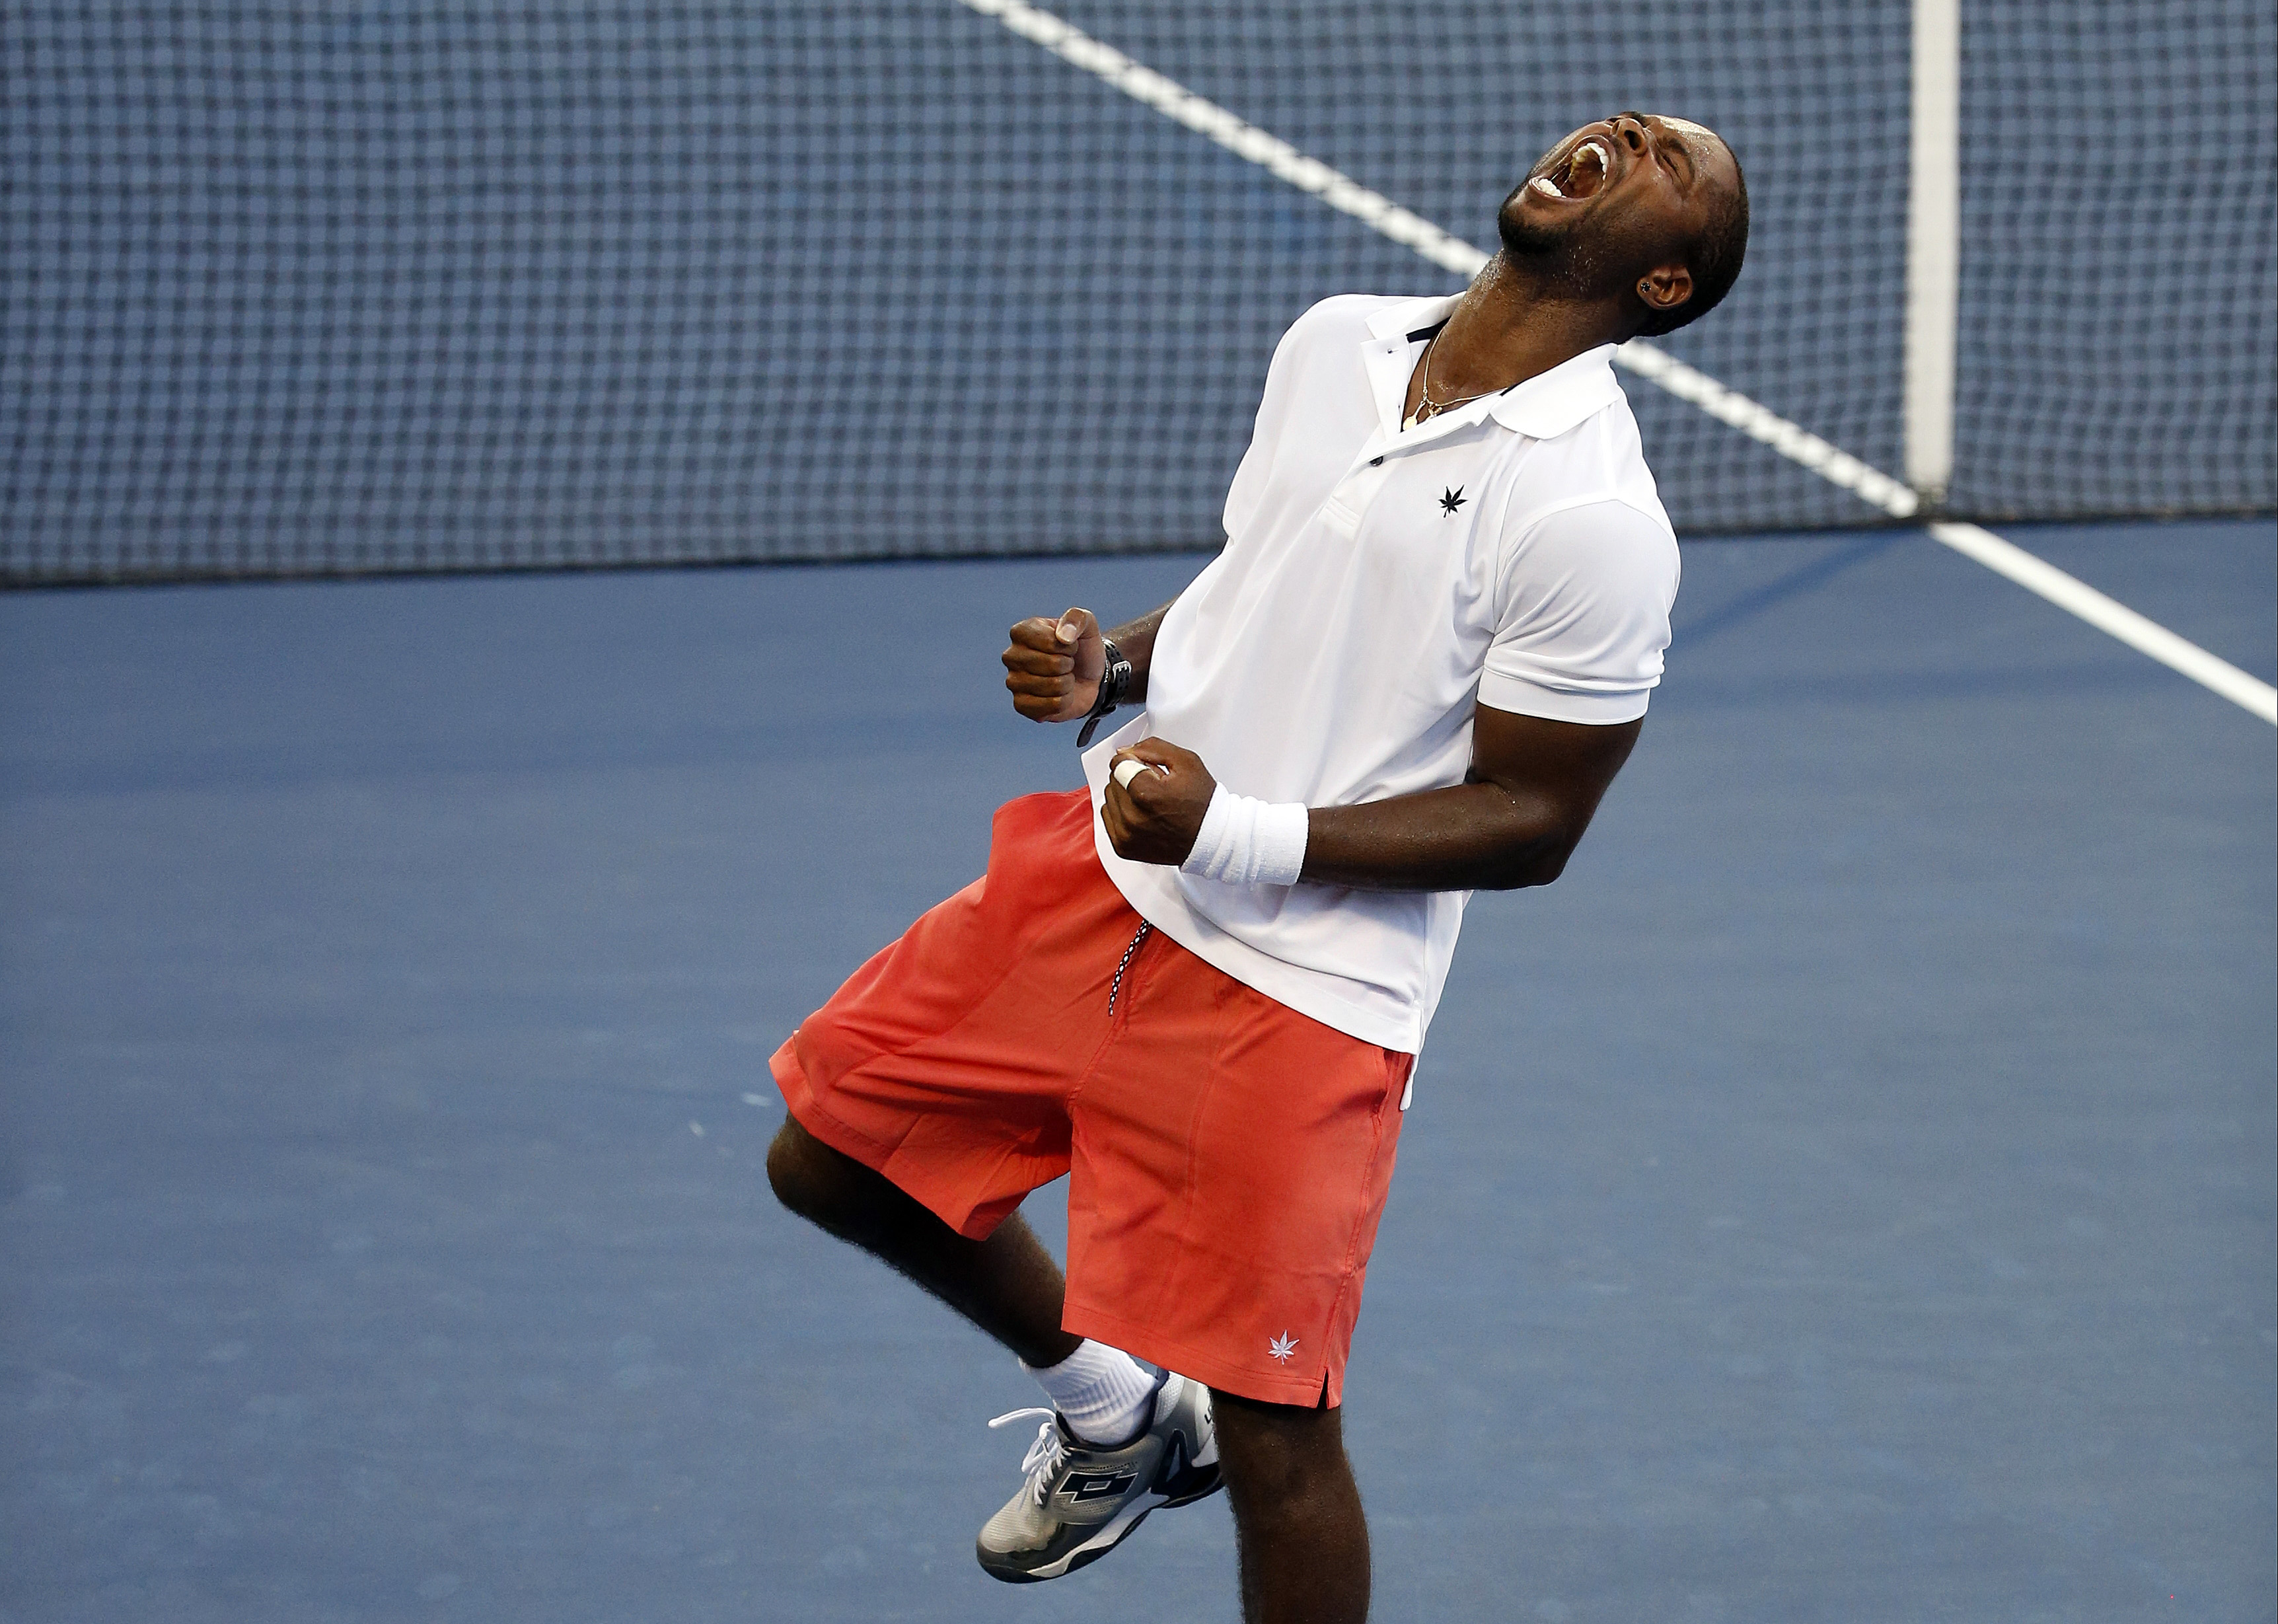 Donald Young, of the United States, celebrates after beating Viktor Troicki, of Serbia, during the third round of the U.S. Open tennis tournament, Saturday, Sept. 5, 2015, in New York. (AP Photo/Julio Cortez)